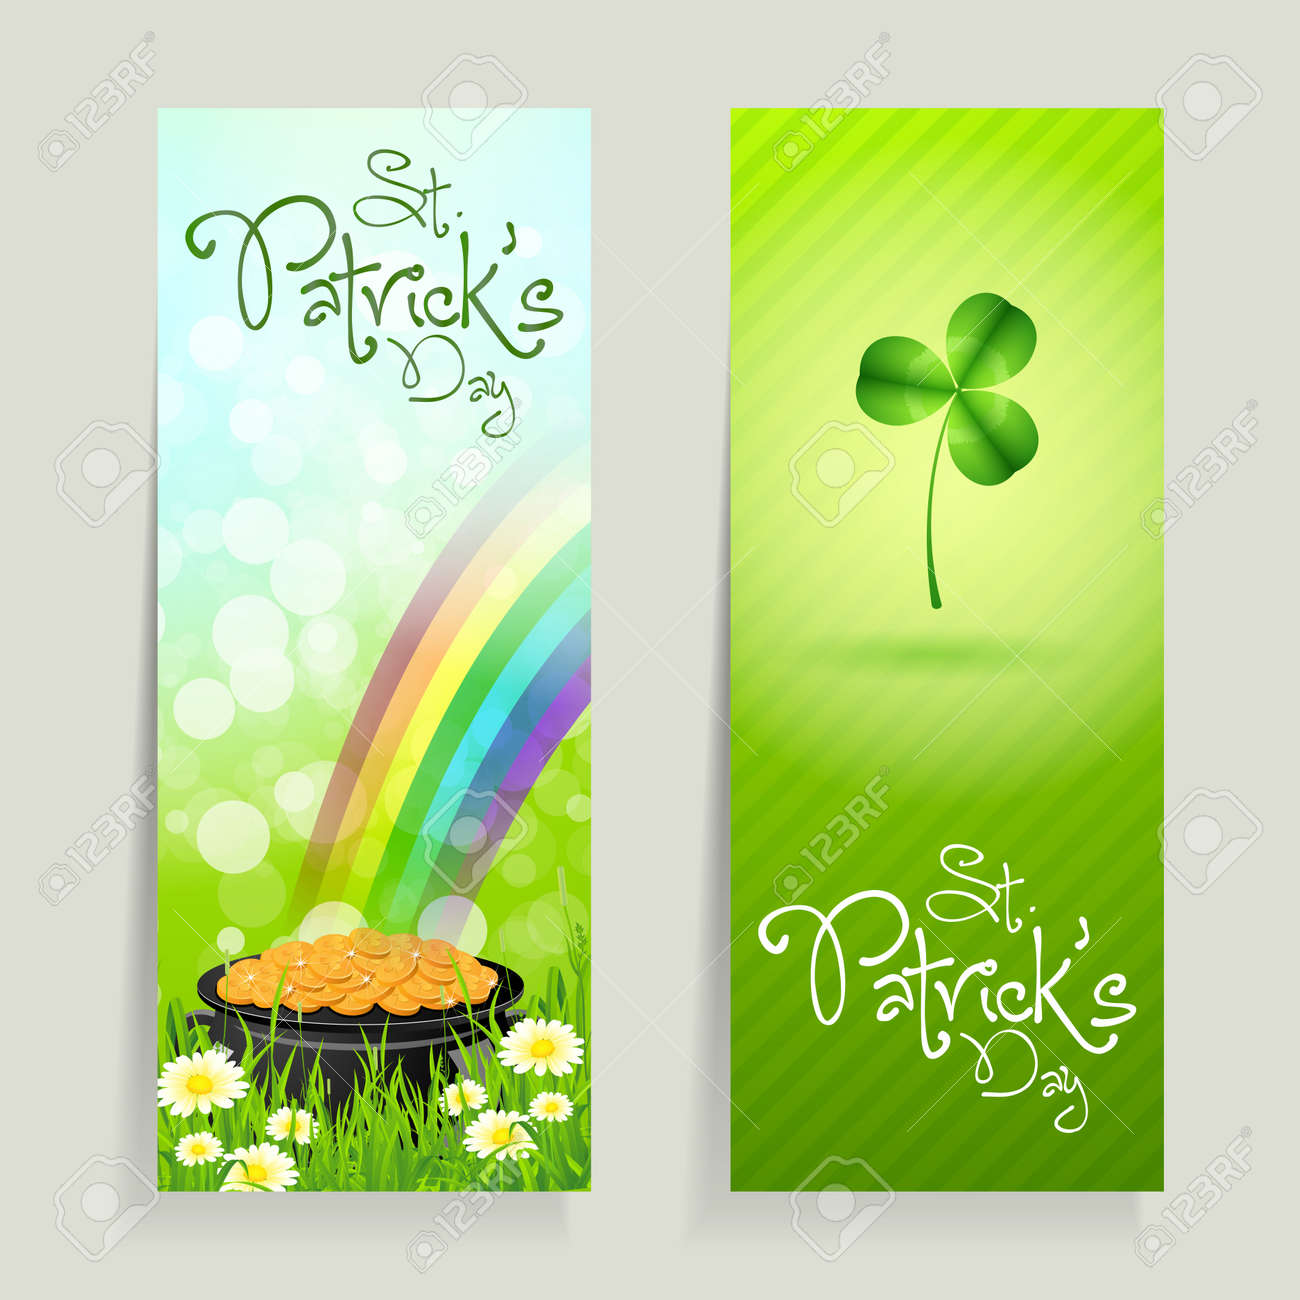 Set of St. Patrick's Day Cards with Cauldron of Gold Coins and Shamrock Stock Vector - 17860196